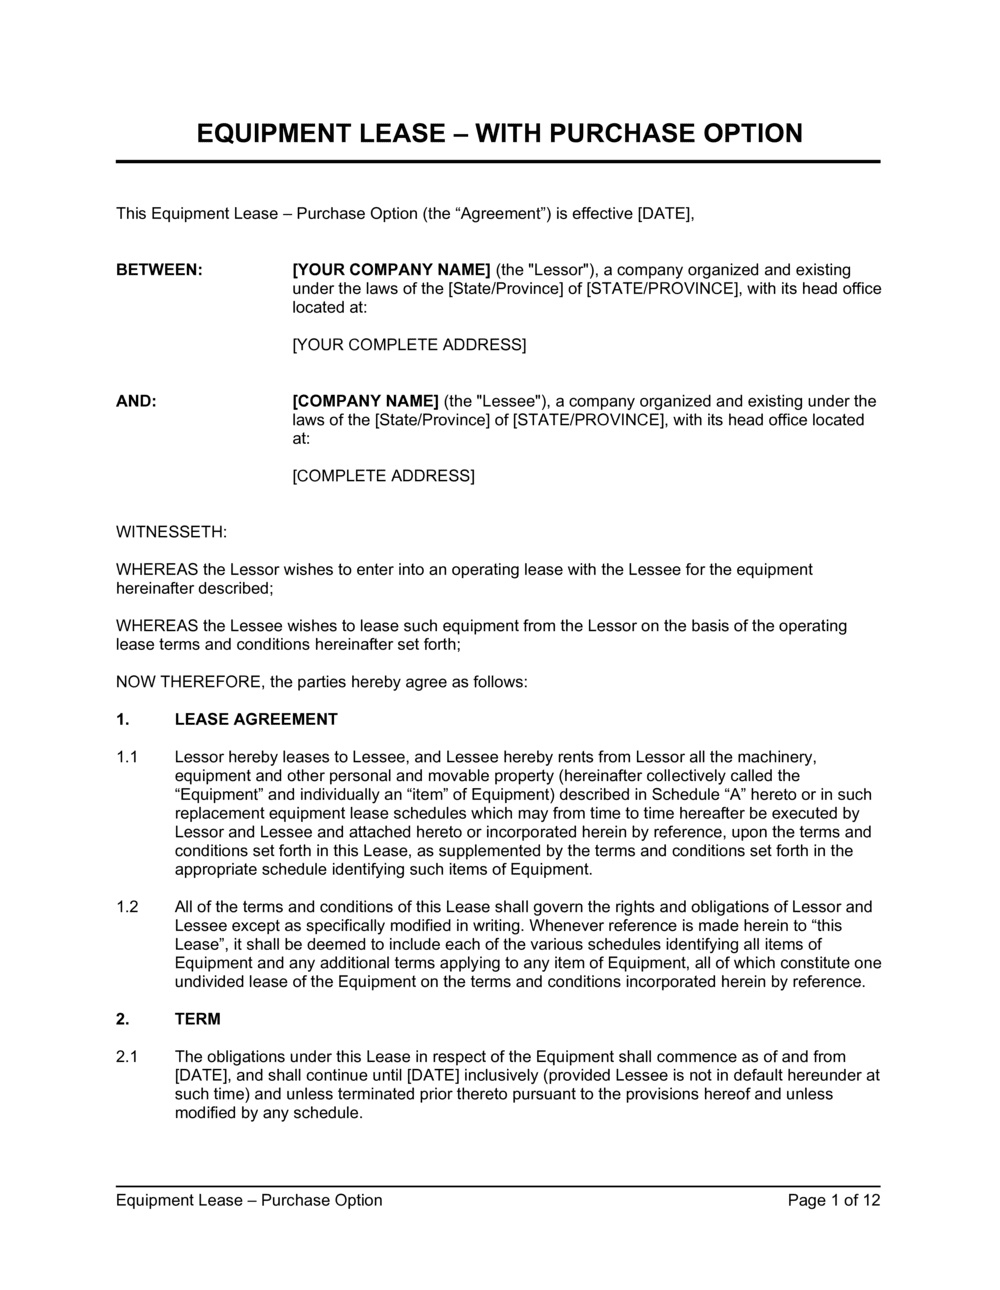 Business-in-a-Box's Equipment Lease Agreement With Option to Purchase Template